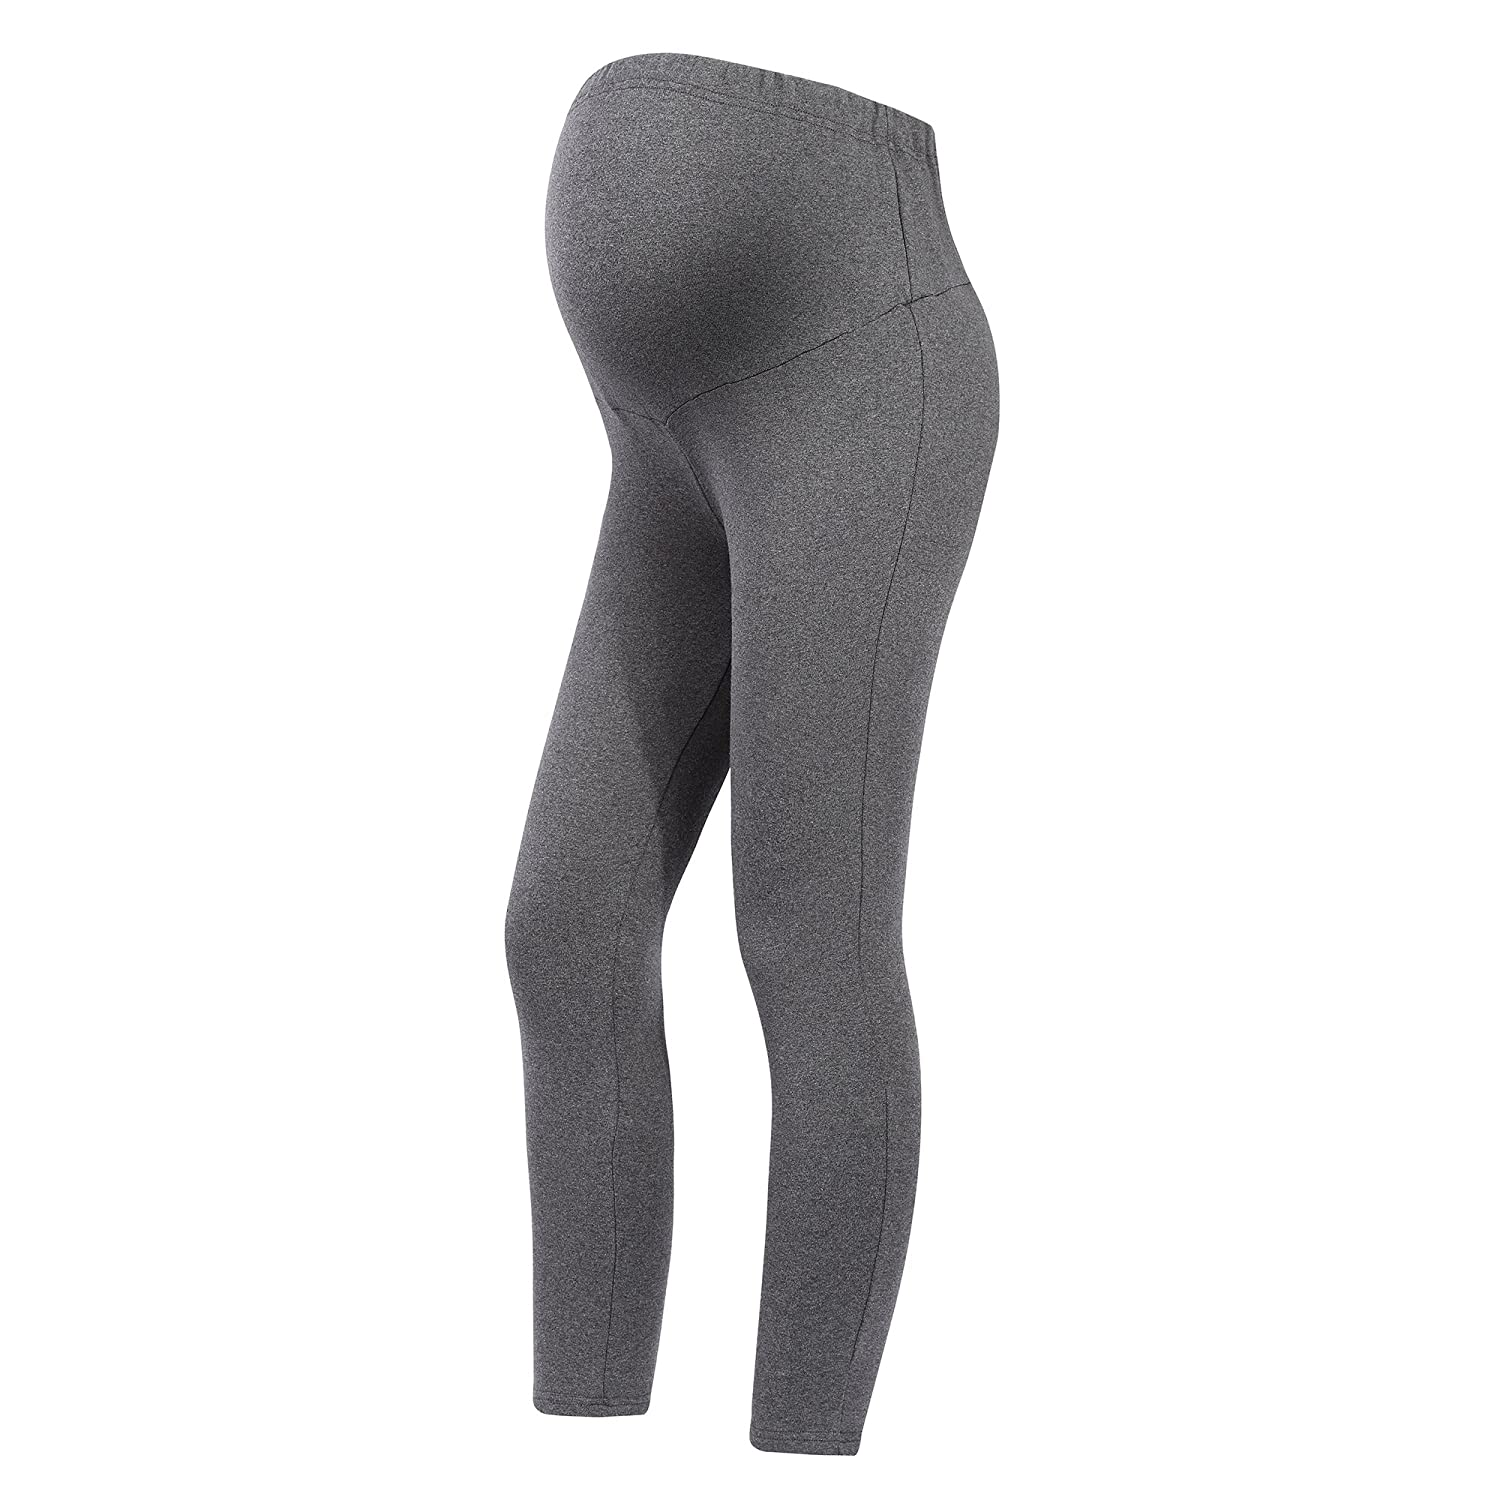 a2912109a2c10 Amazon.com: Women's Secret fit Belly Maternity Leggings Casual Abdomen Pants  Comfortable and Relaxing Supportive: Clothing